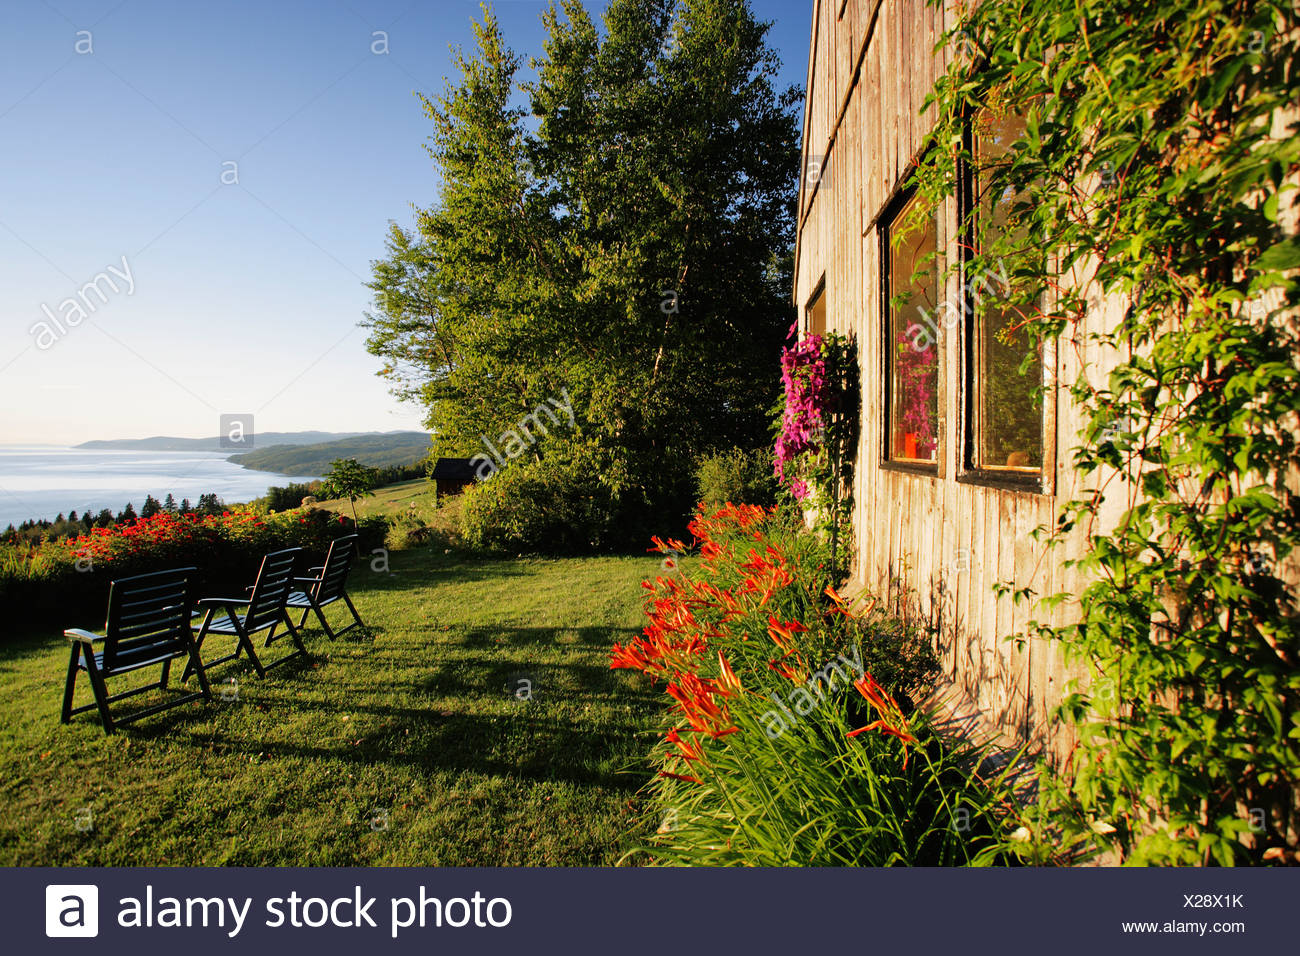 Cottage and St. Lawrence River, Charlevoix Region, Saint-Irenee, Quebec. - Stock Image